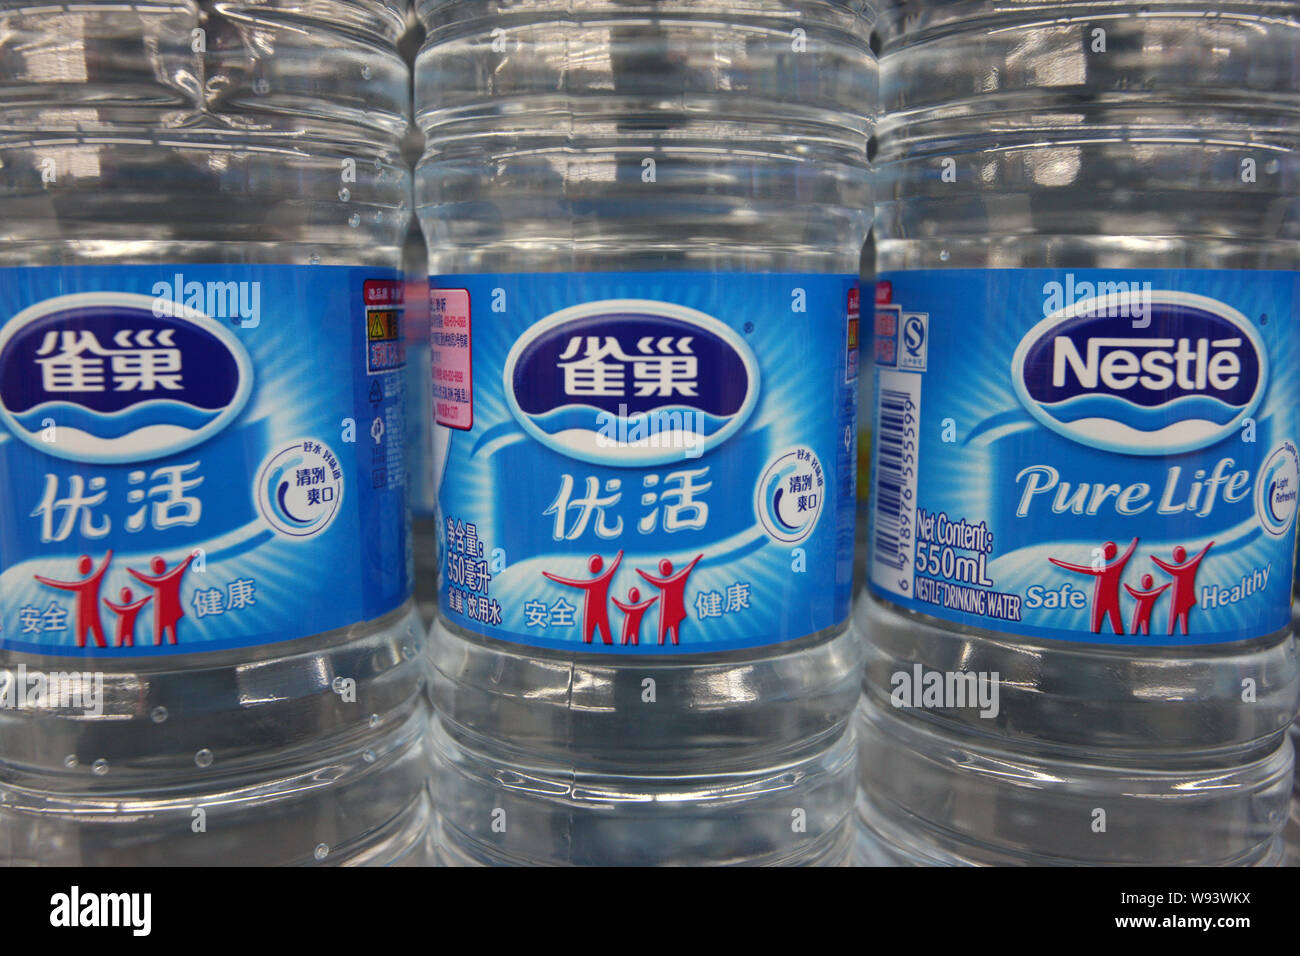 Nestle Water Stock Photos & Nestle Water Stock Images - Alamy